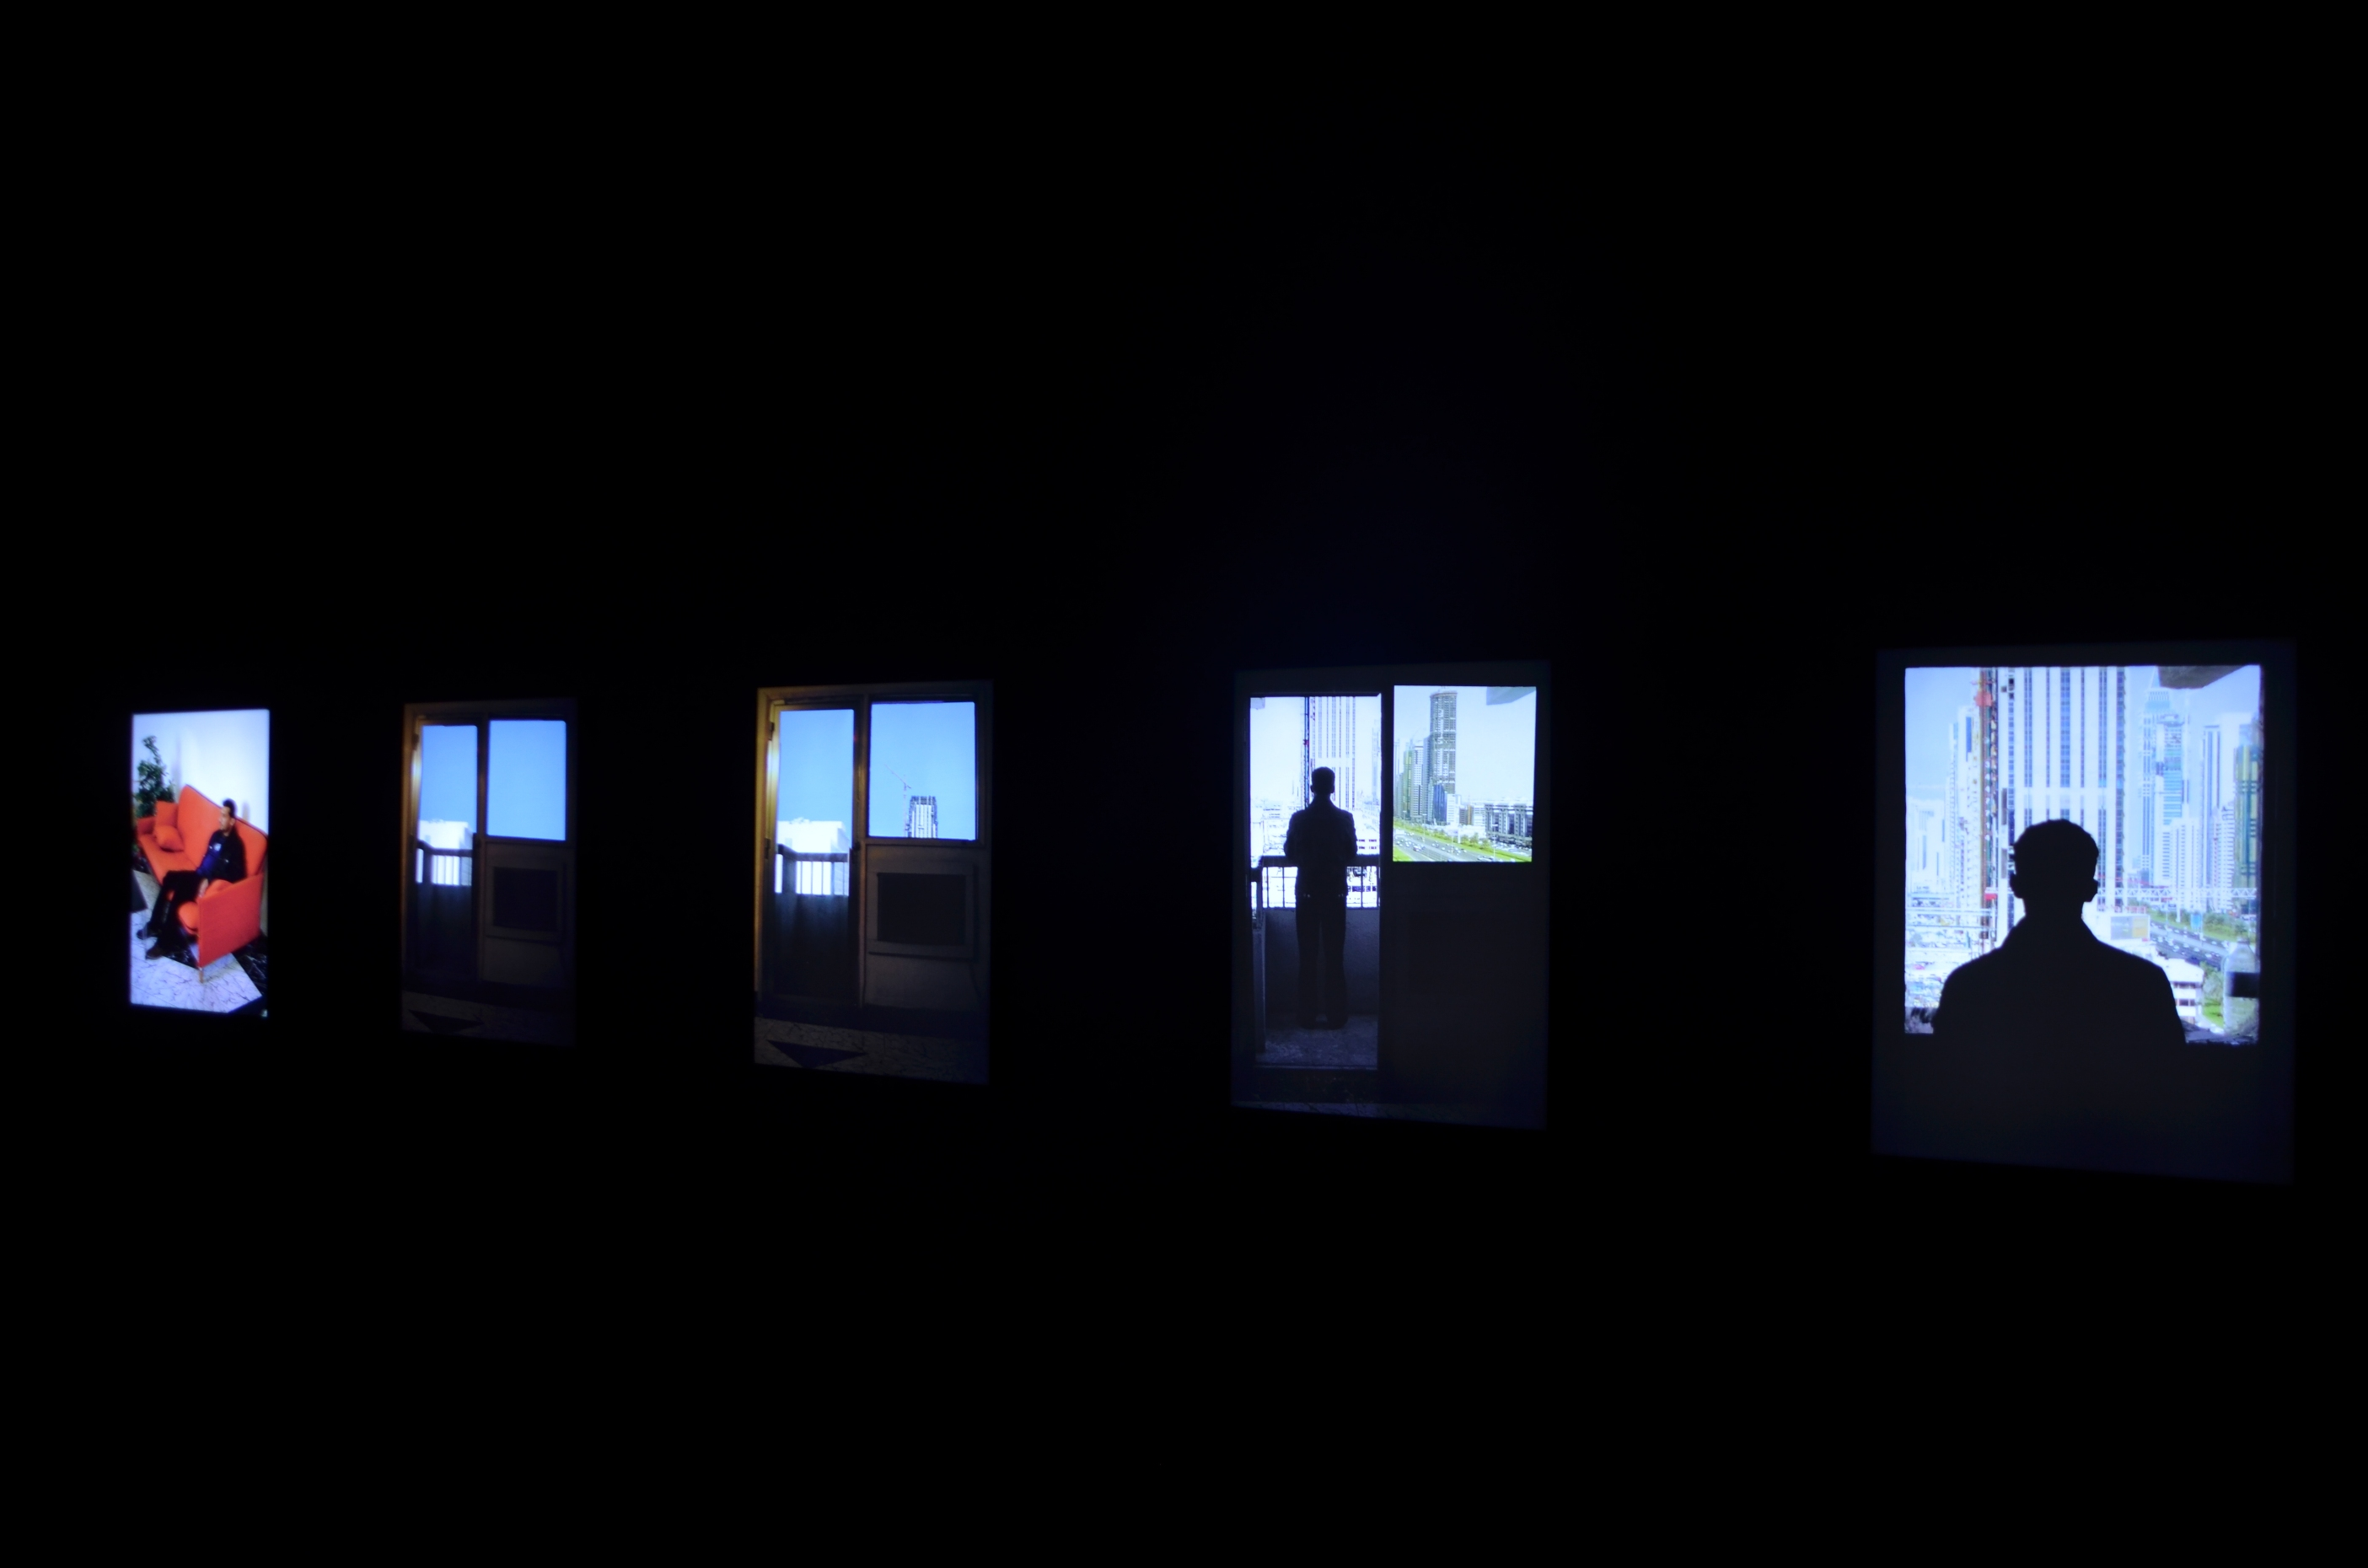 Mohammed Kazem, Window 2003-5 (dettaglio) - The Artist and Mori Art Museum (photo Mohammed Kazem)